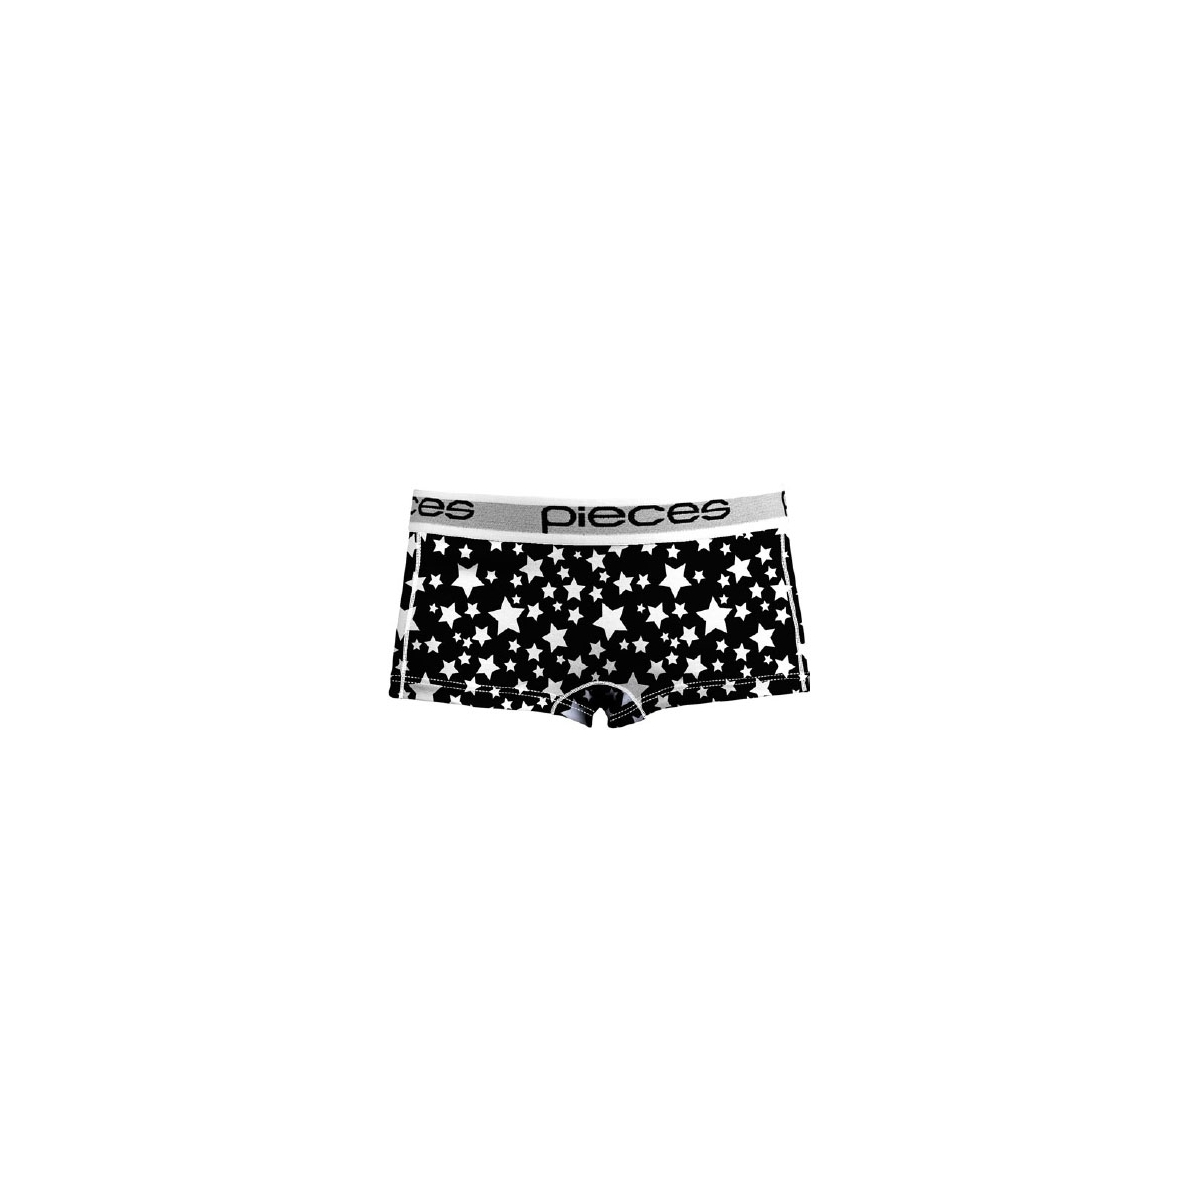 pclogo lady boxers 14-186 blc&wh 17079675 pieces ondergoed black/comb b